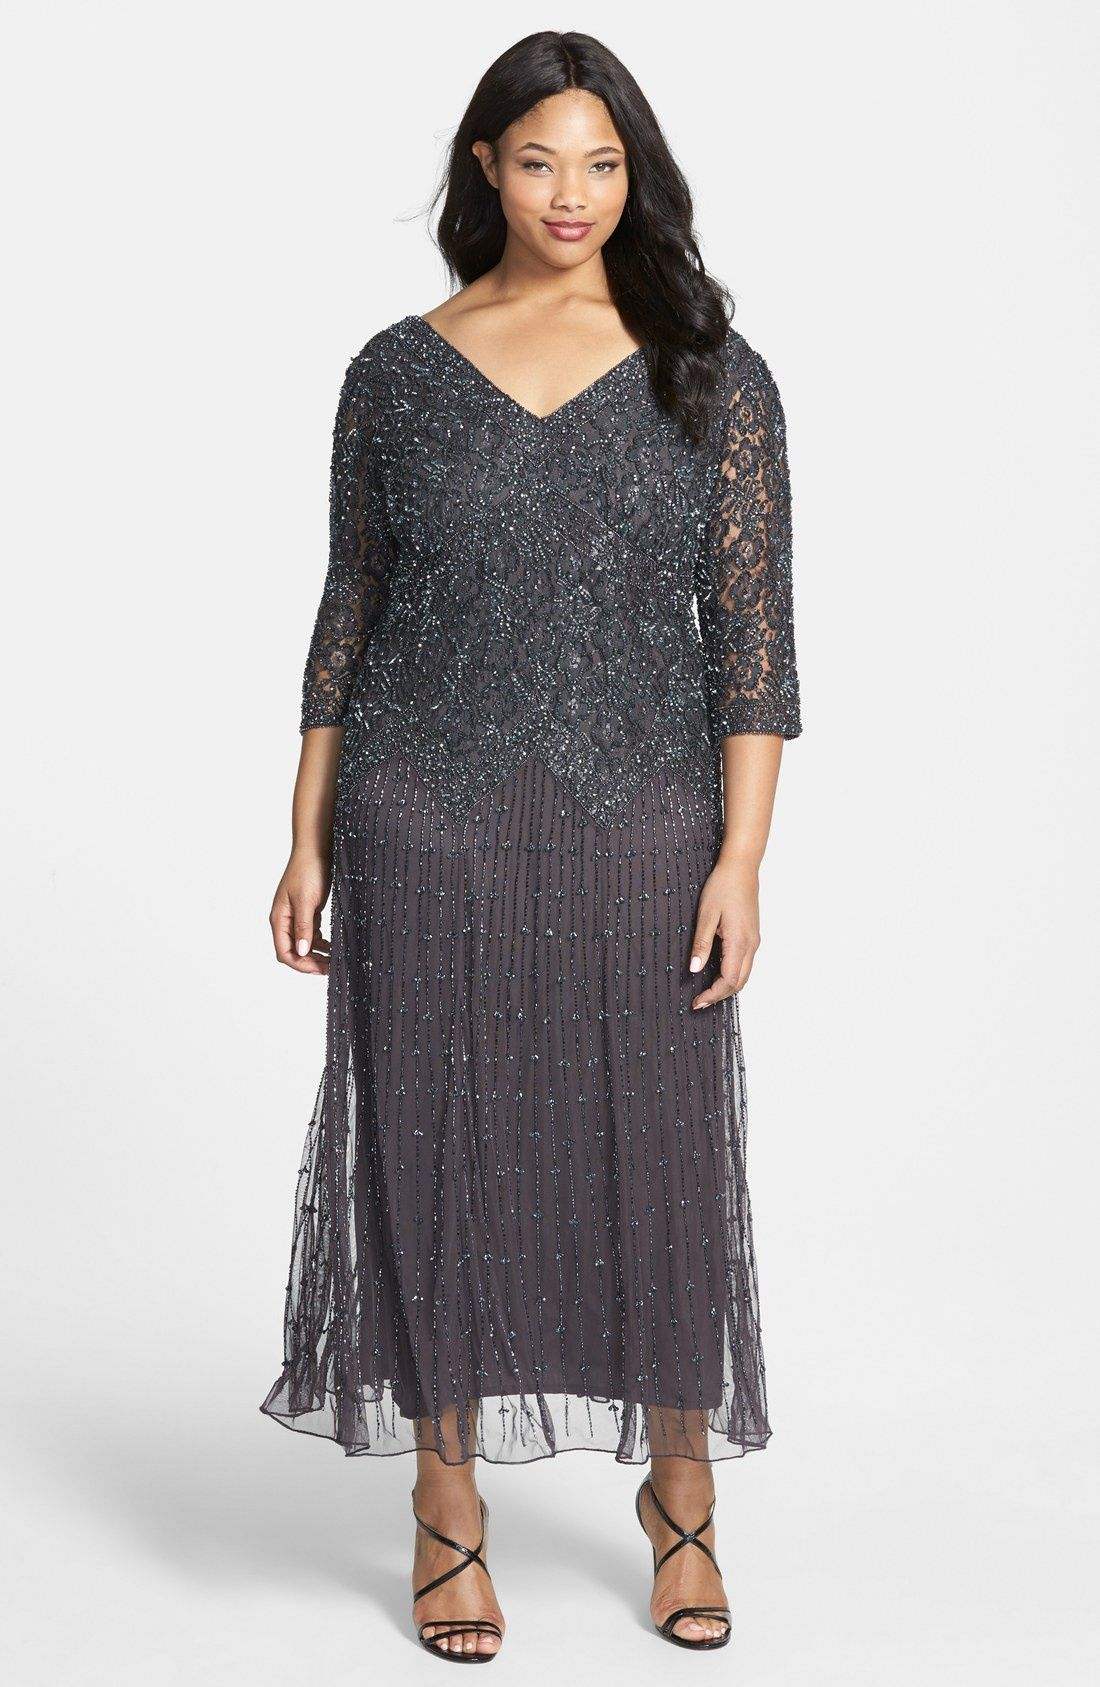 Formal Plus-Size Dresses | Nordstrom | Dresses | Dresses ...